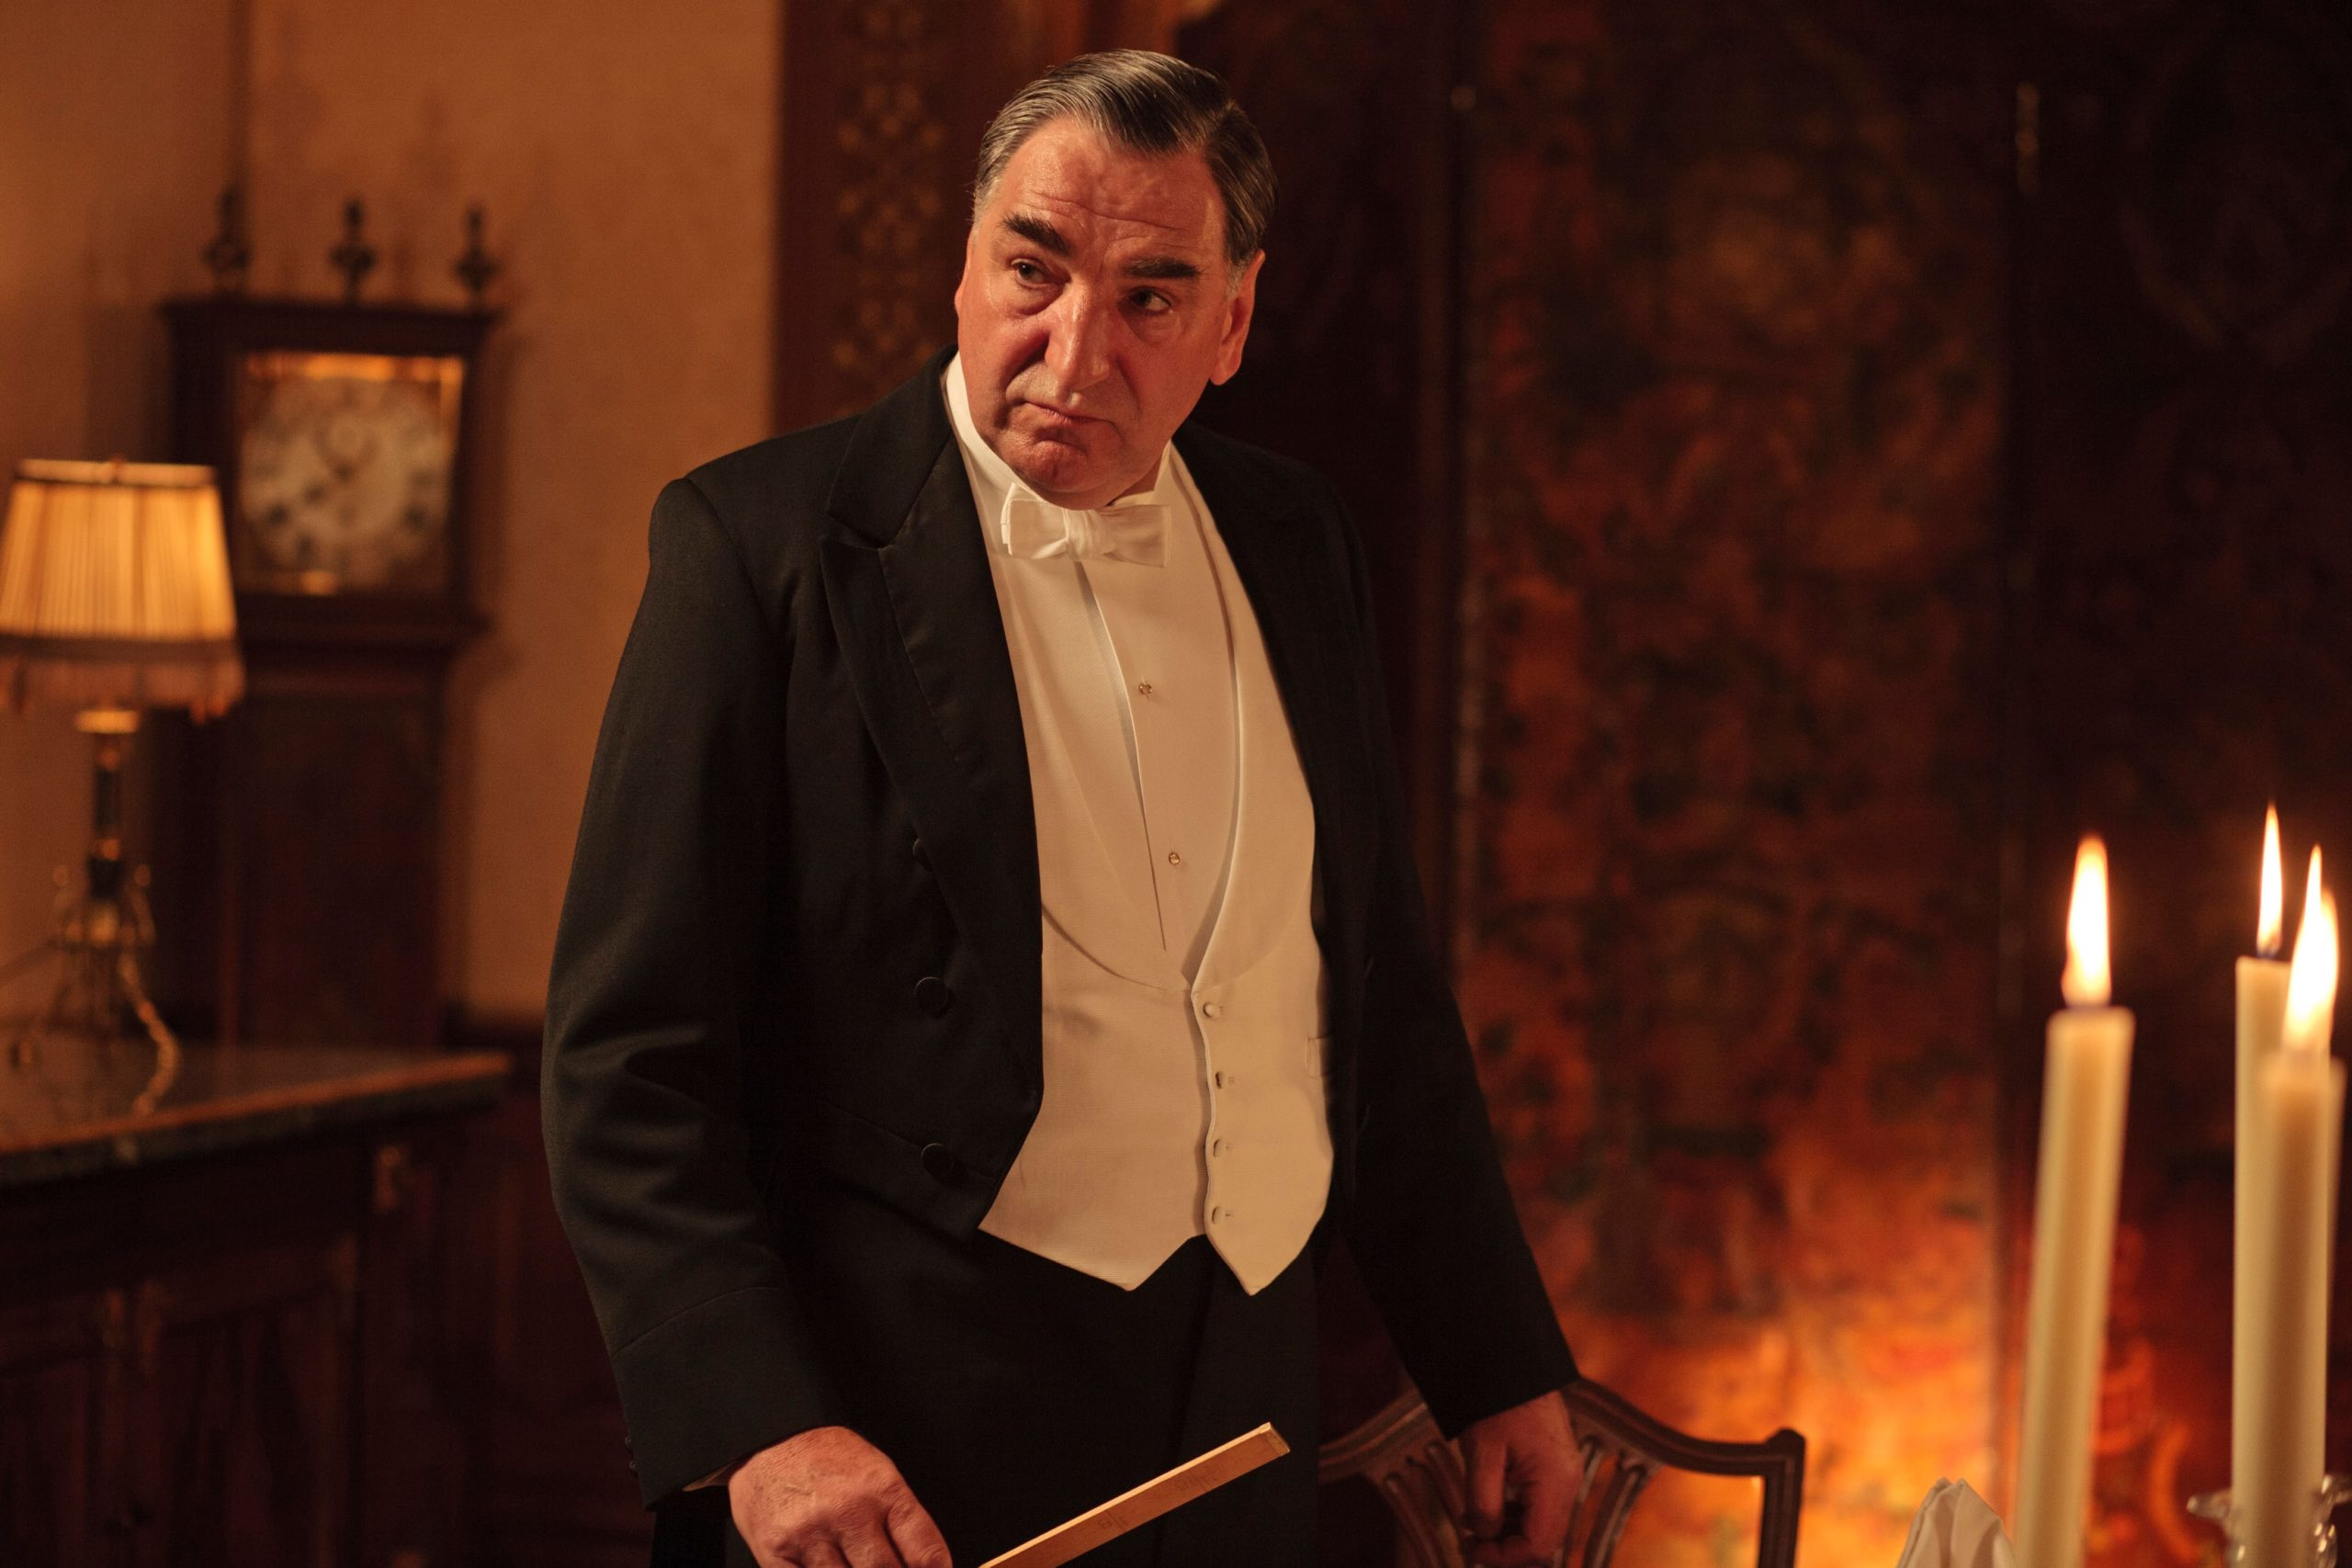 DOWNTON ABBEY, Jim Carter, 'Episode 2.5', (Season 2, aired Oct. 19, 2011), 2010-. photo: Nick Briggs